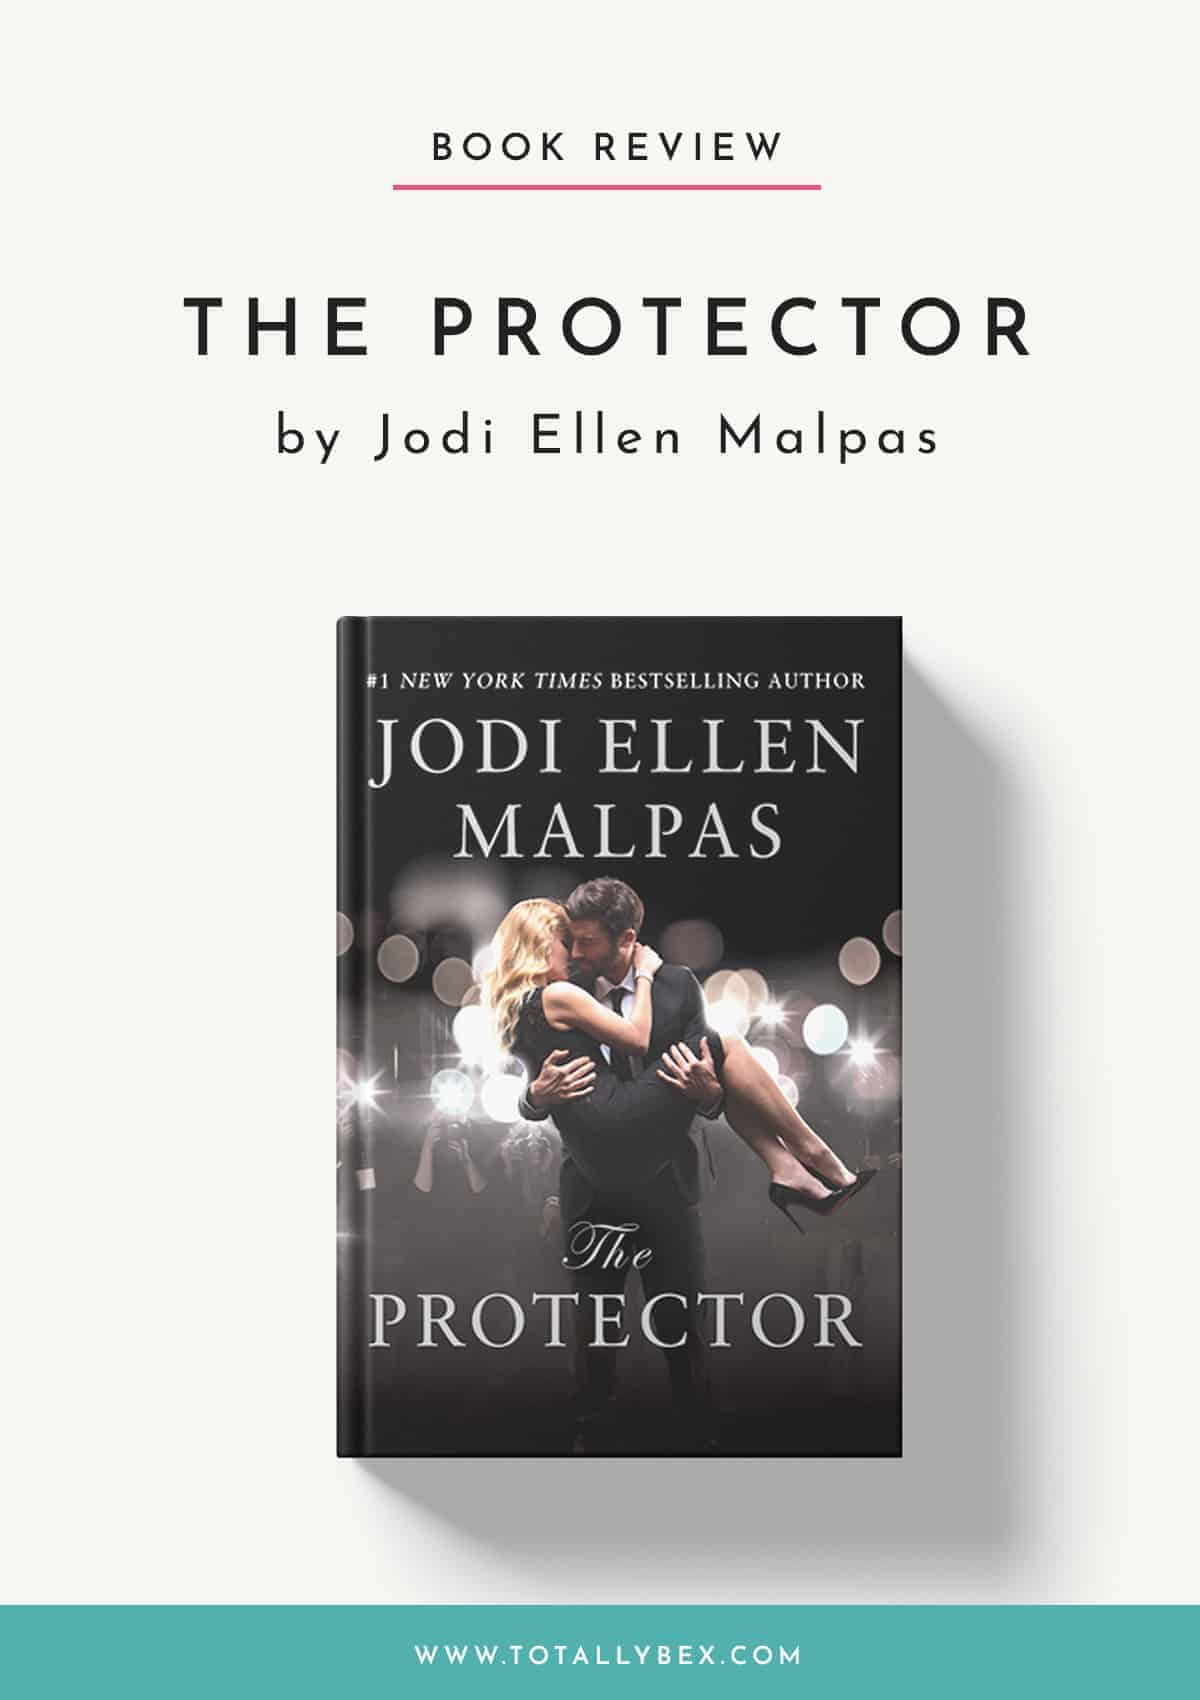 The Protector by Jodi Ellen Malpas-Book Review